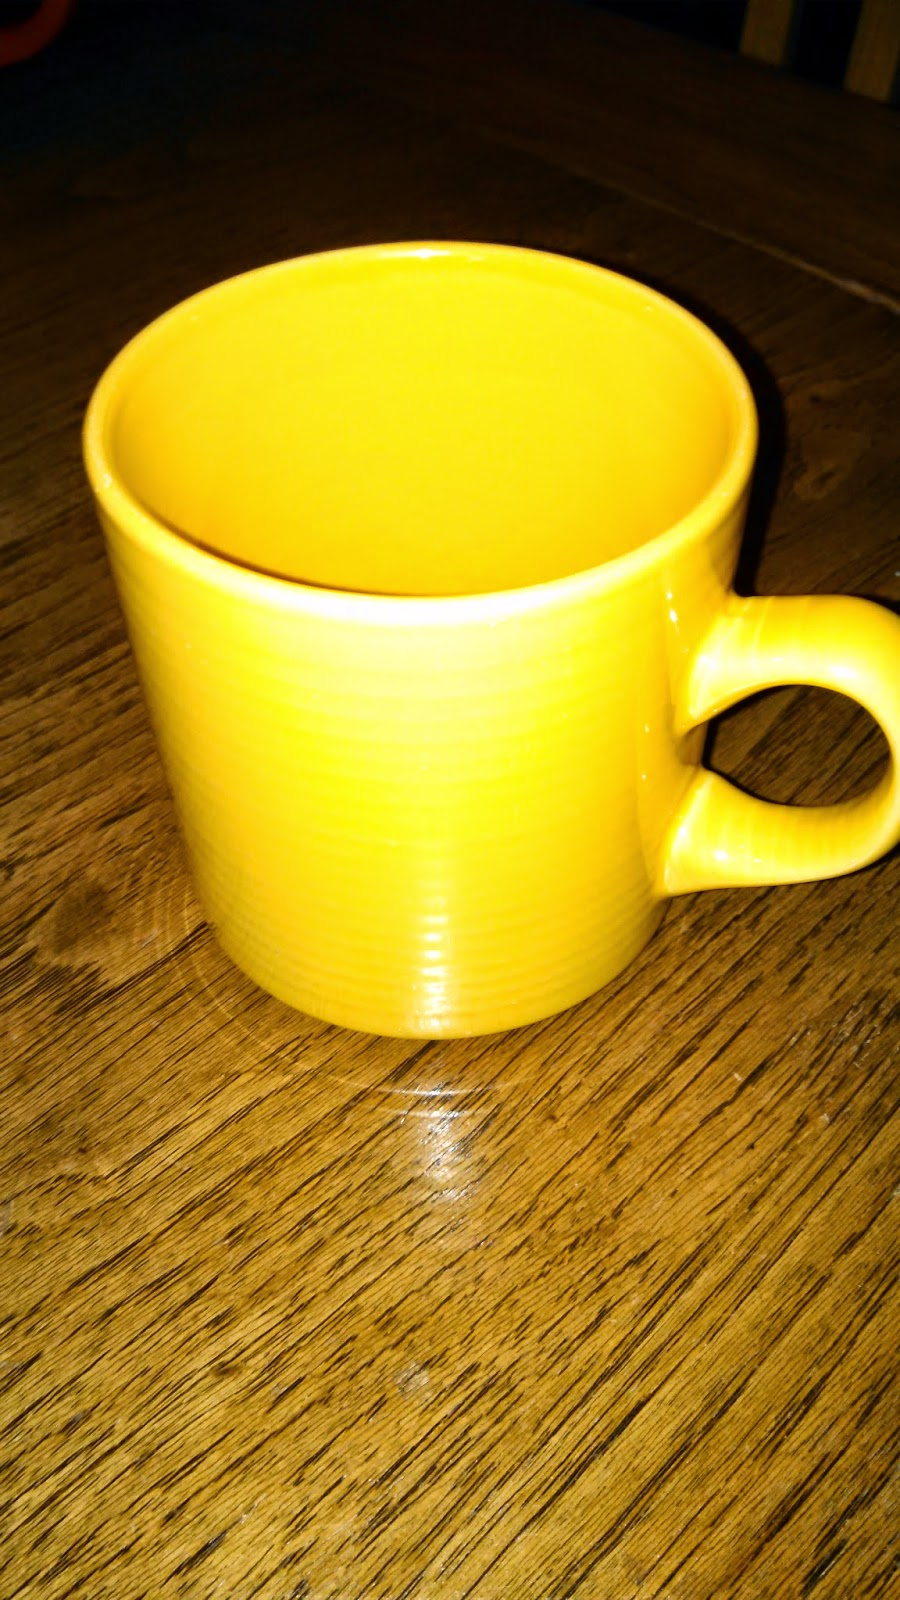 This coffee mug is too small- coffee gets cold fast